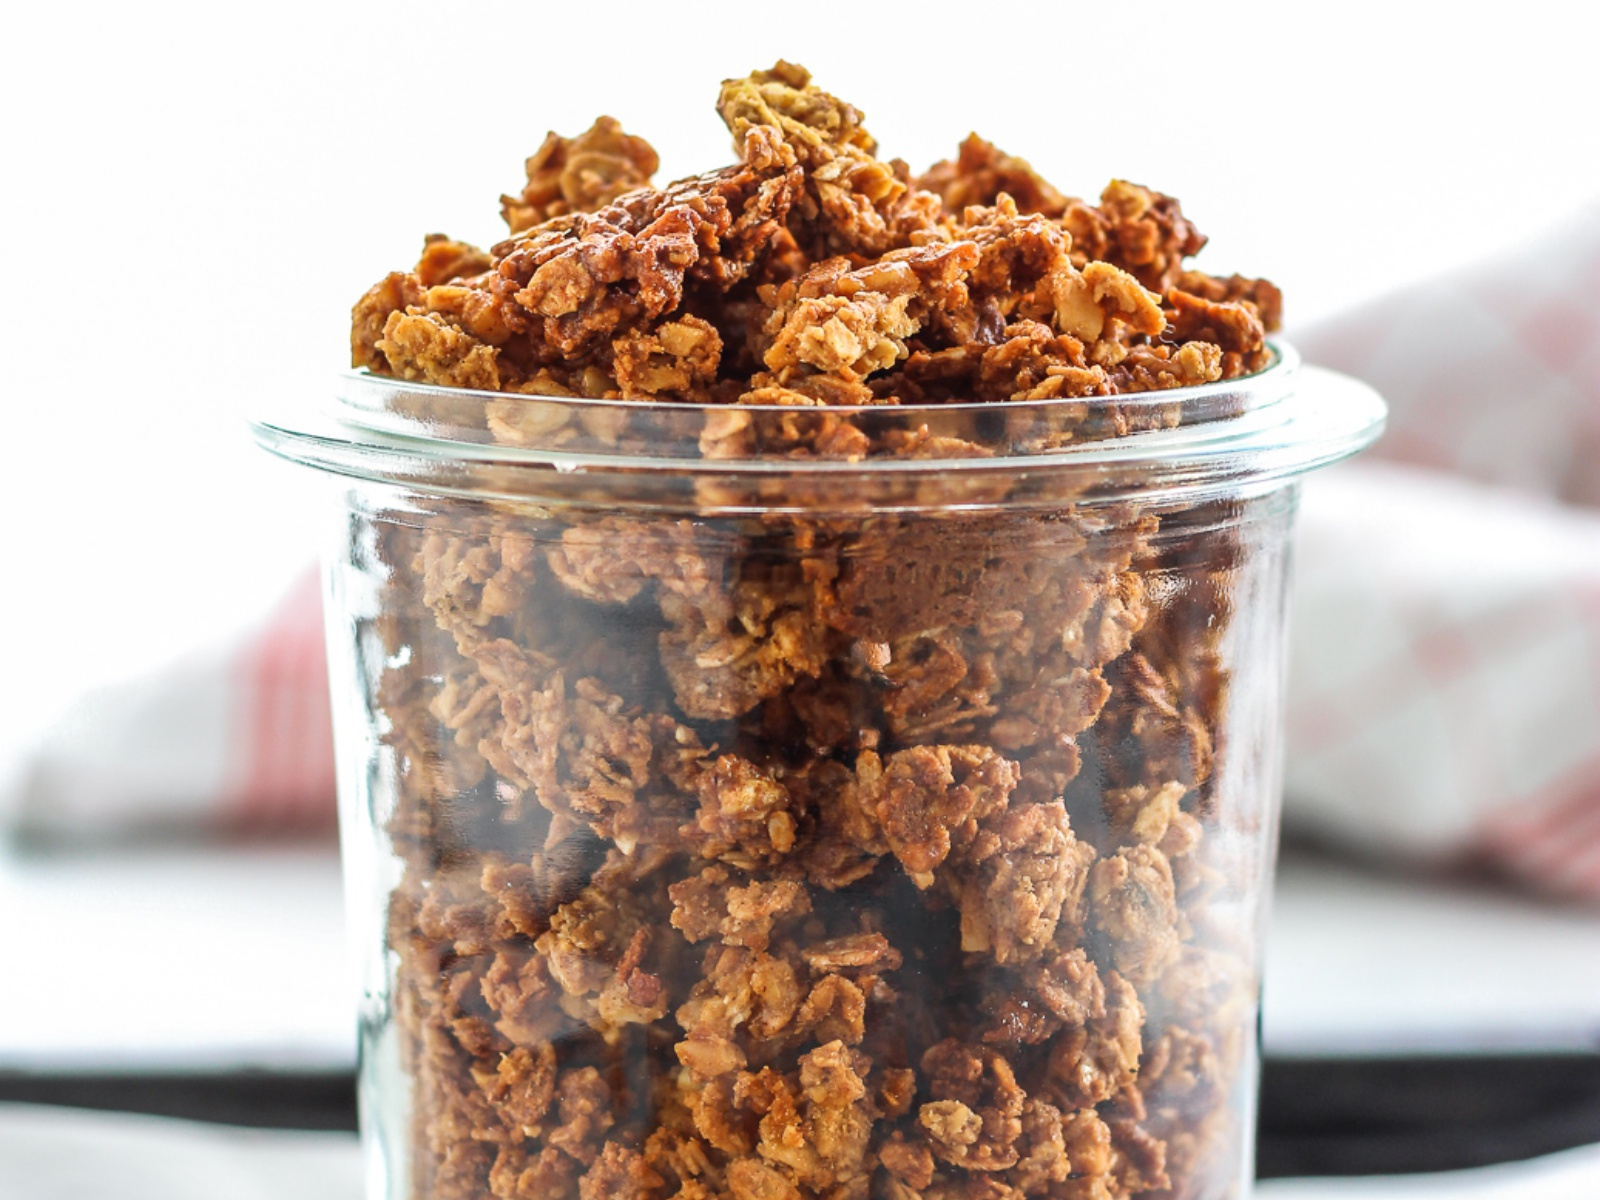 Oil-free Cinnamon Crunch Granola